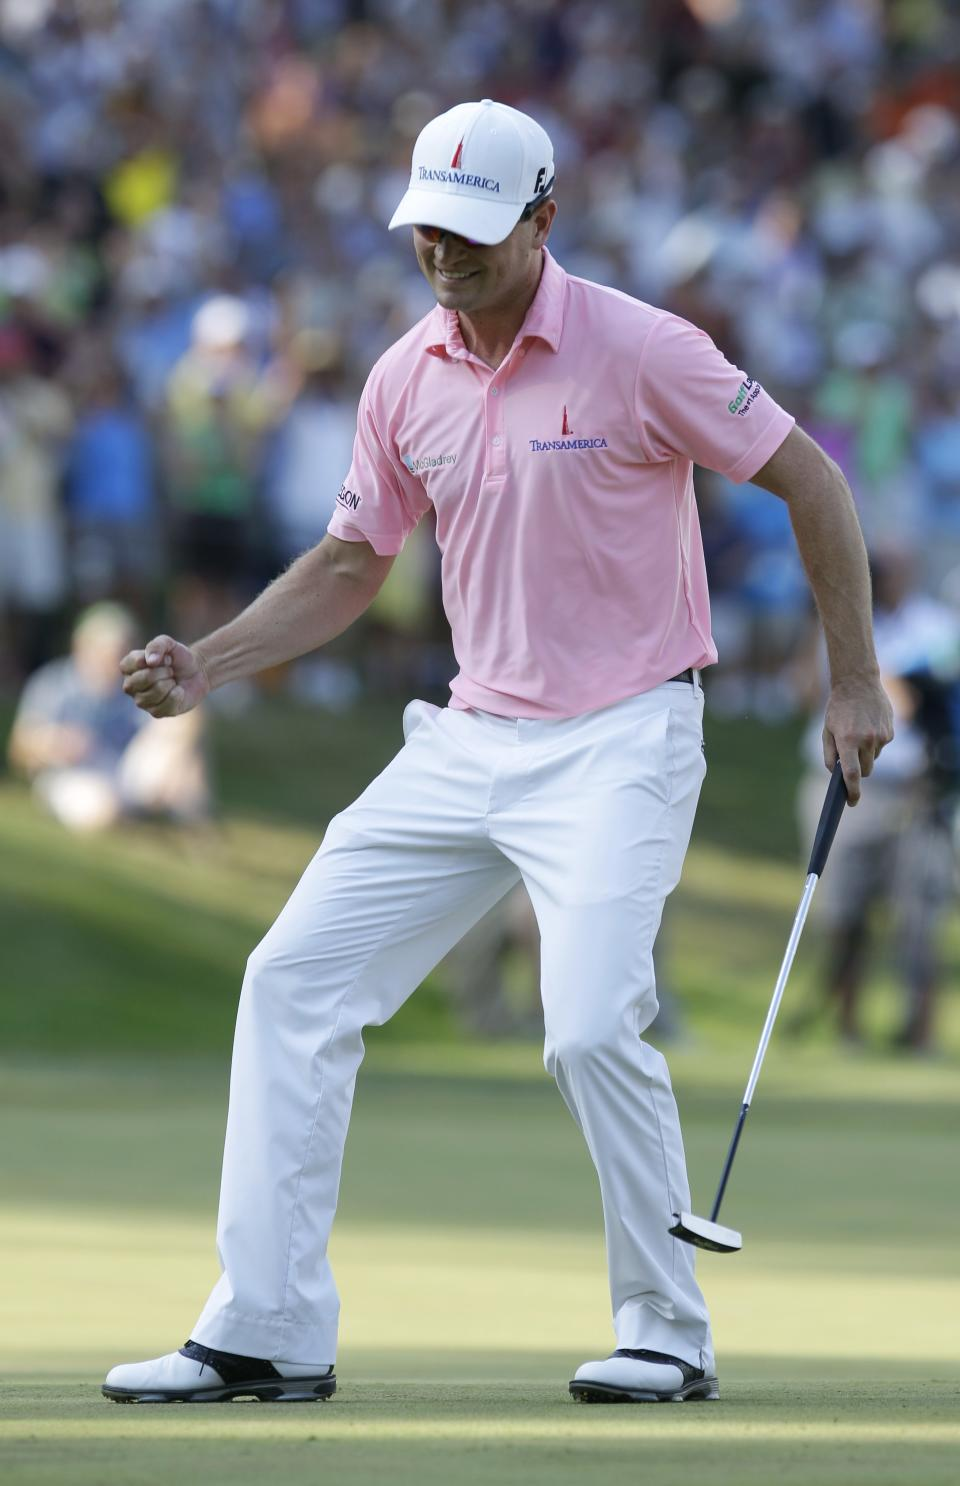 Zach Johnson reacts after winning the John Deere Classic golf tournament at TPC Deere Run, Sunday, July 15, 2012, in Silvis, Ill.  Johnson defeated Troy Matteson in a playoff. (AP Photo/Charlie Neibergall)